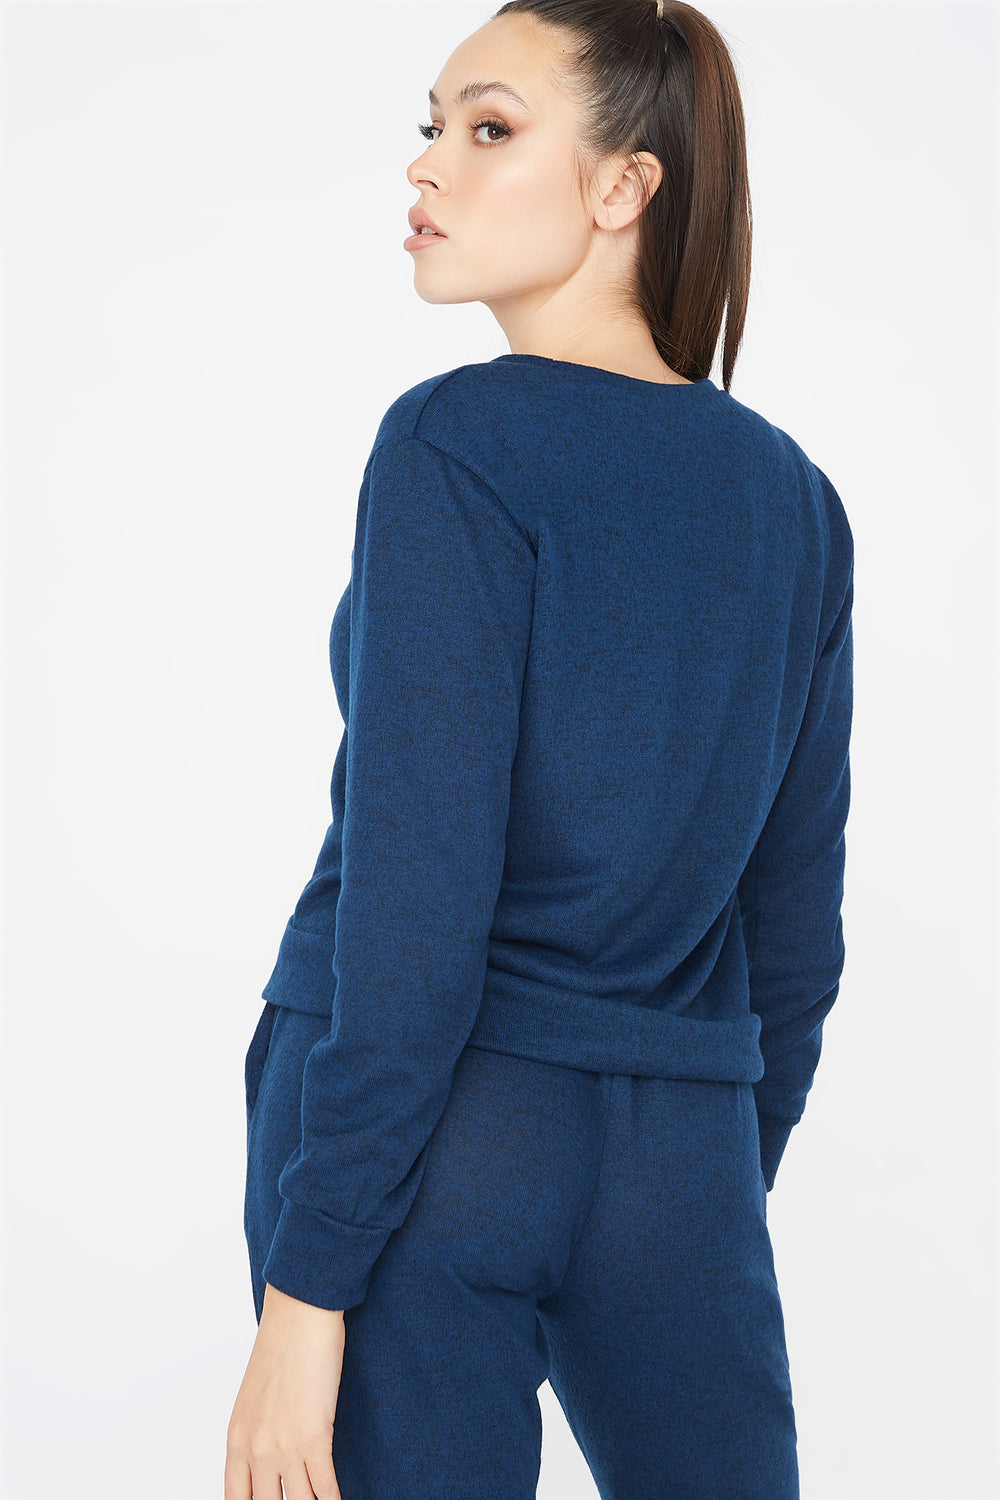 Criss-Cross Hem Boyfriend Sweatshirt Navy